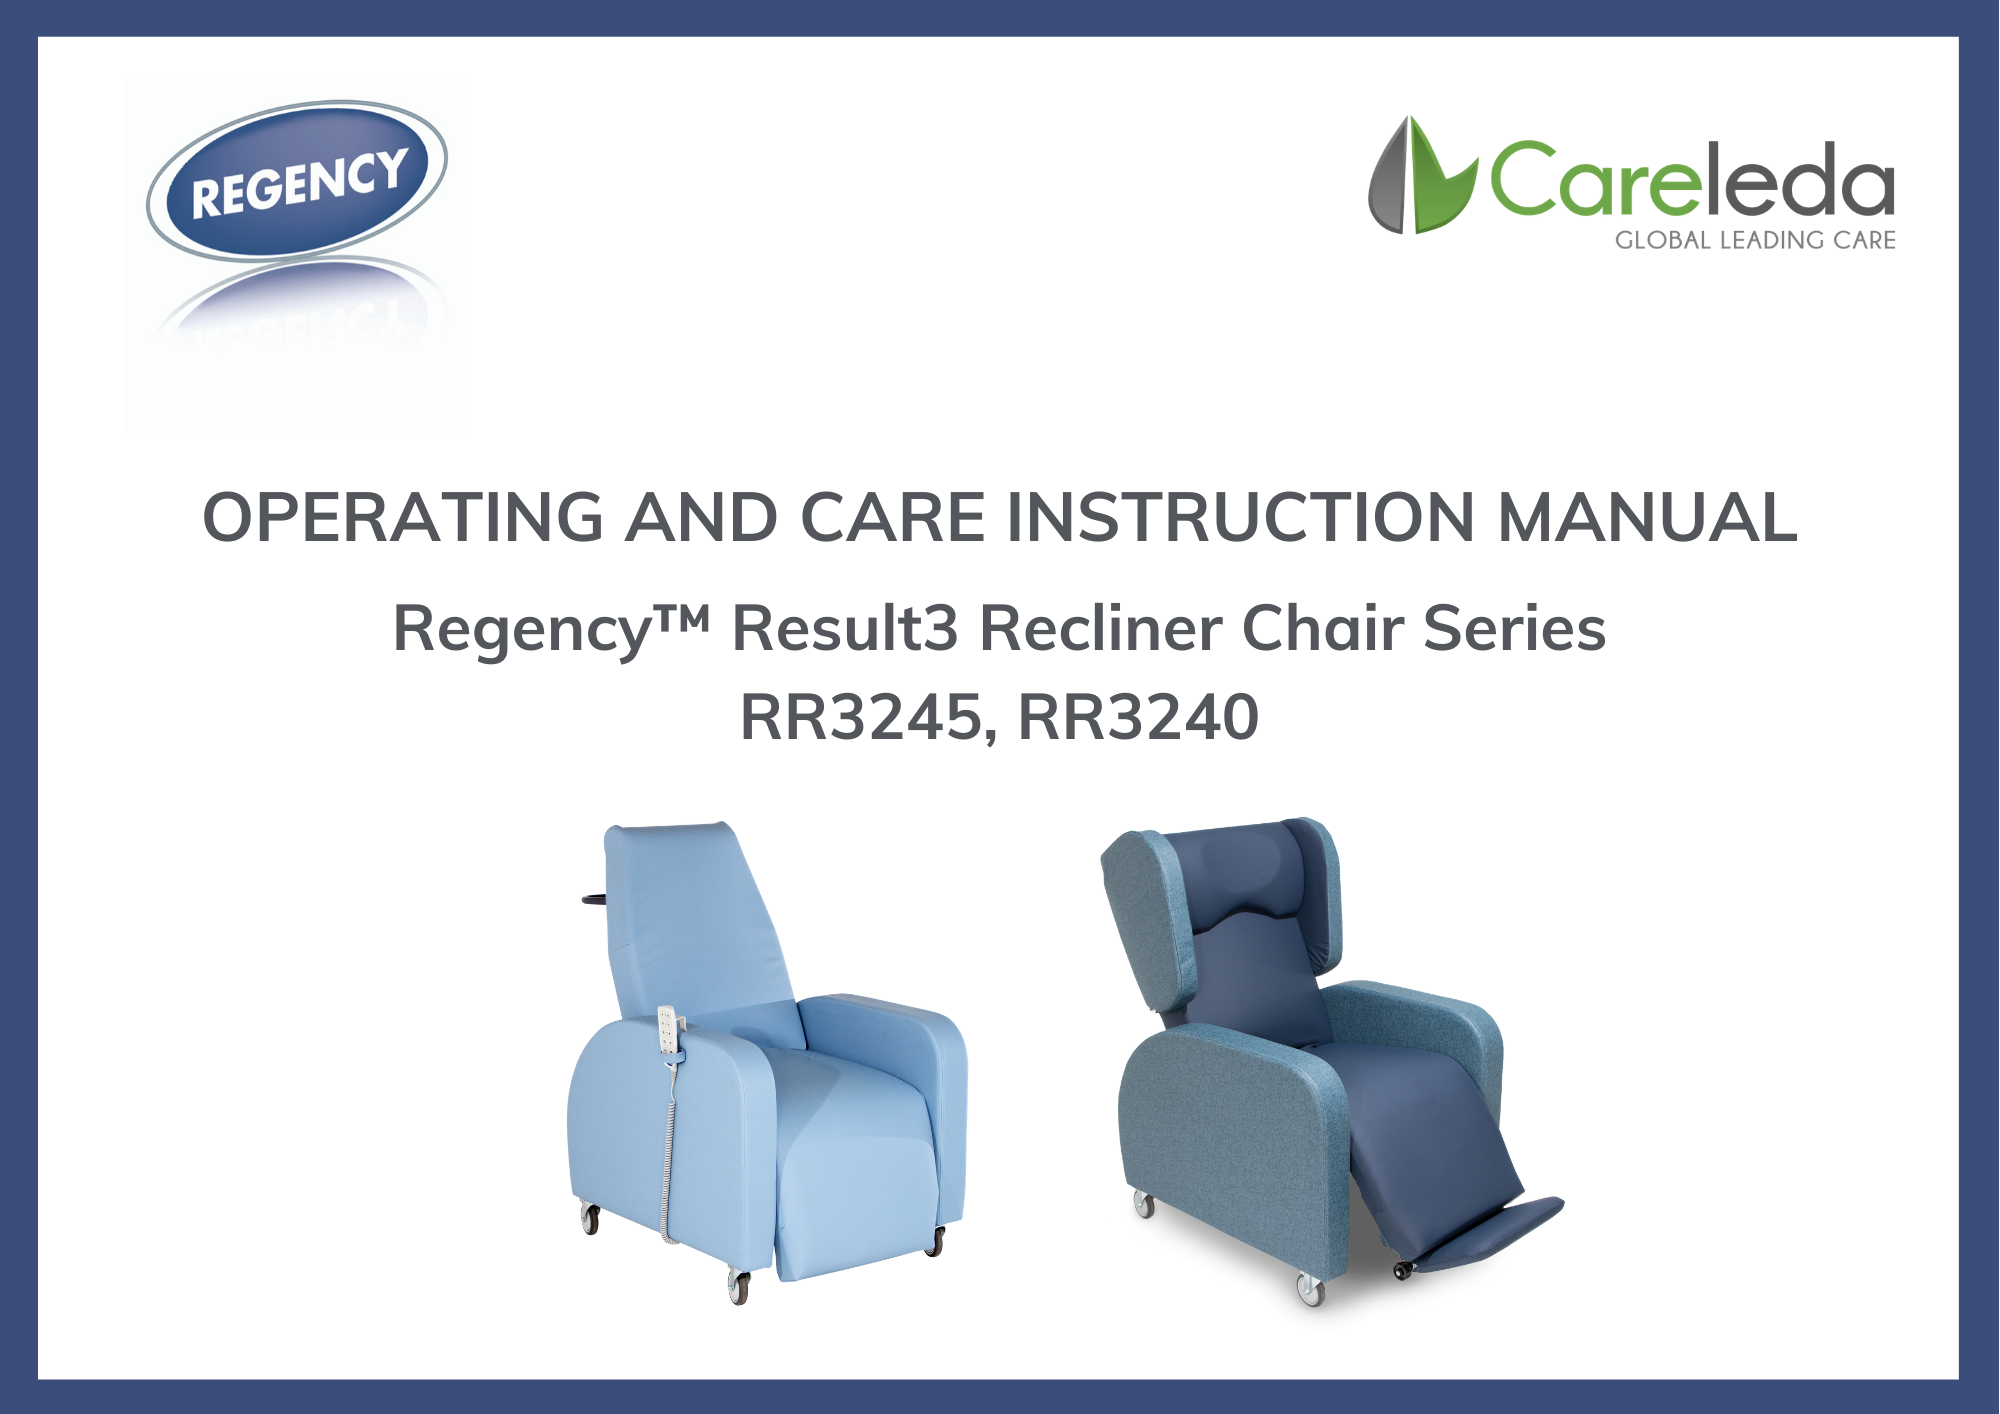 Operating and Care Instruction Manual R3940(5)